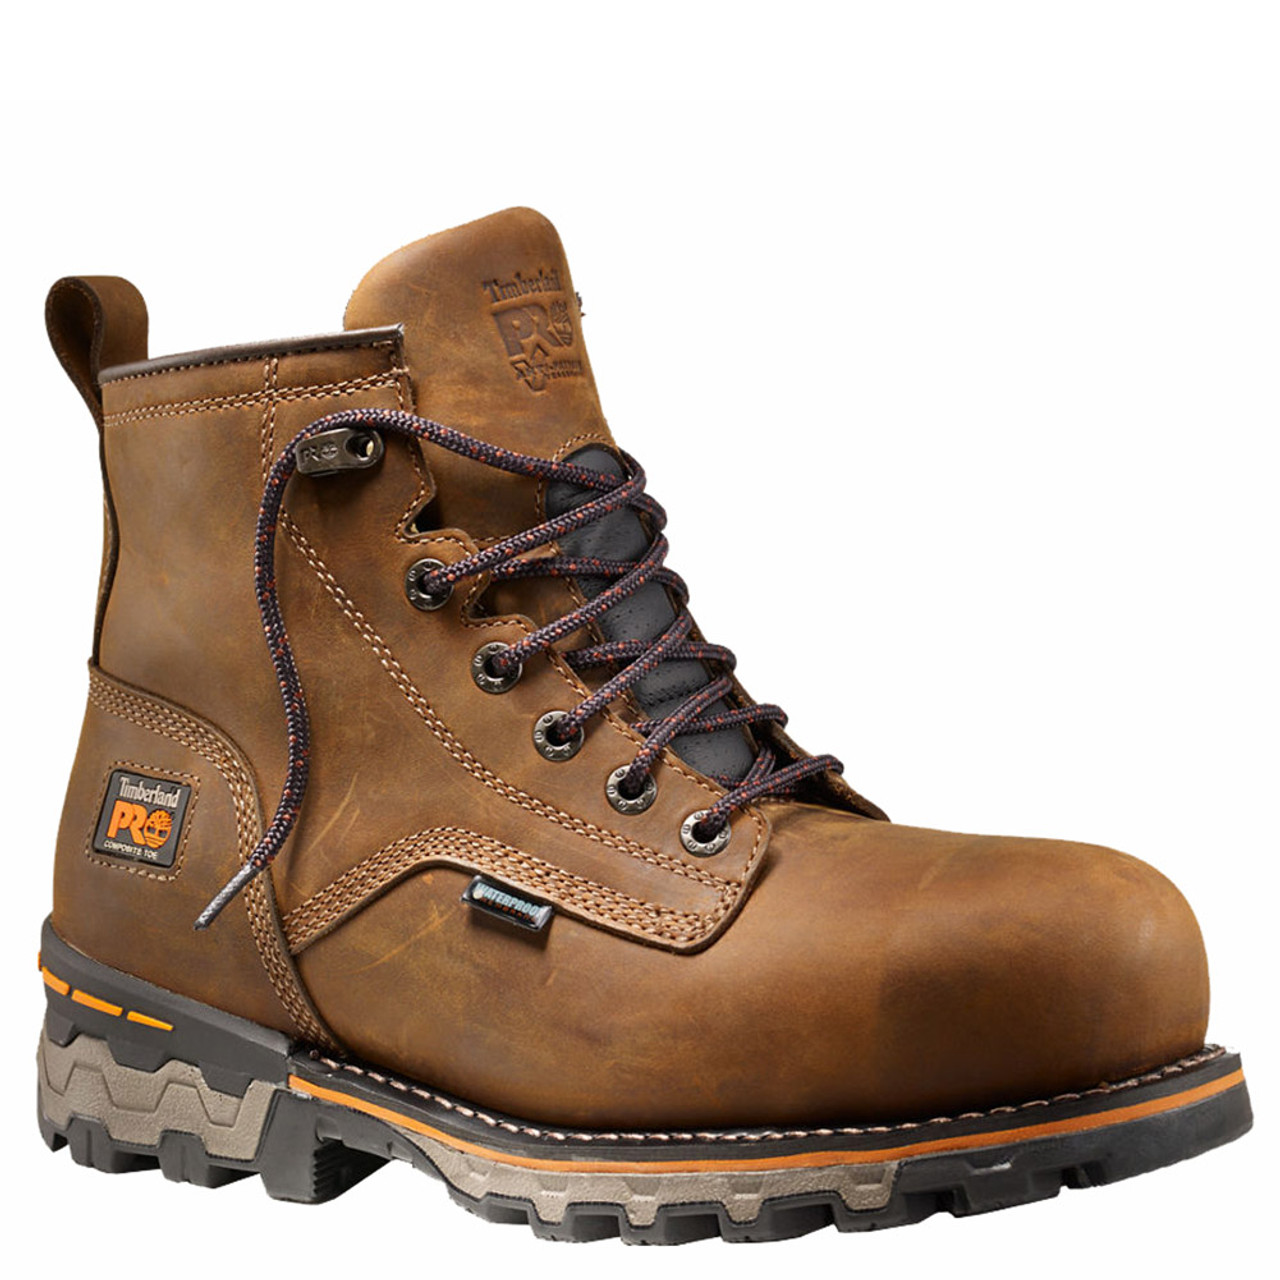 Timberland PRO A127G BOONDOCK Composite Toe Non Insulated Work Boots